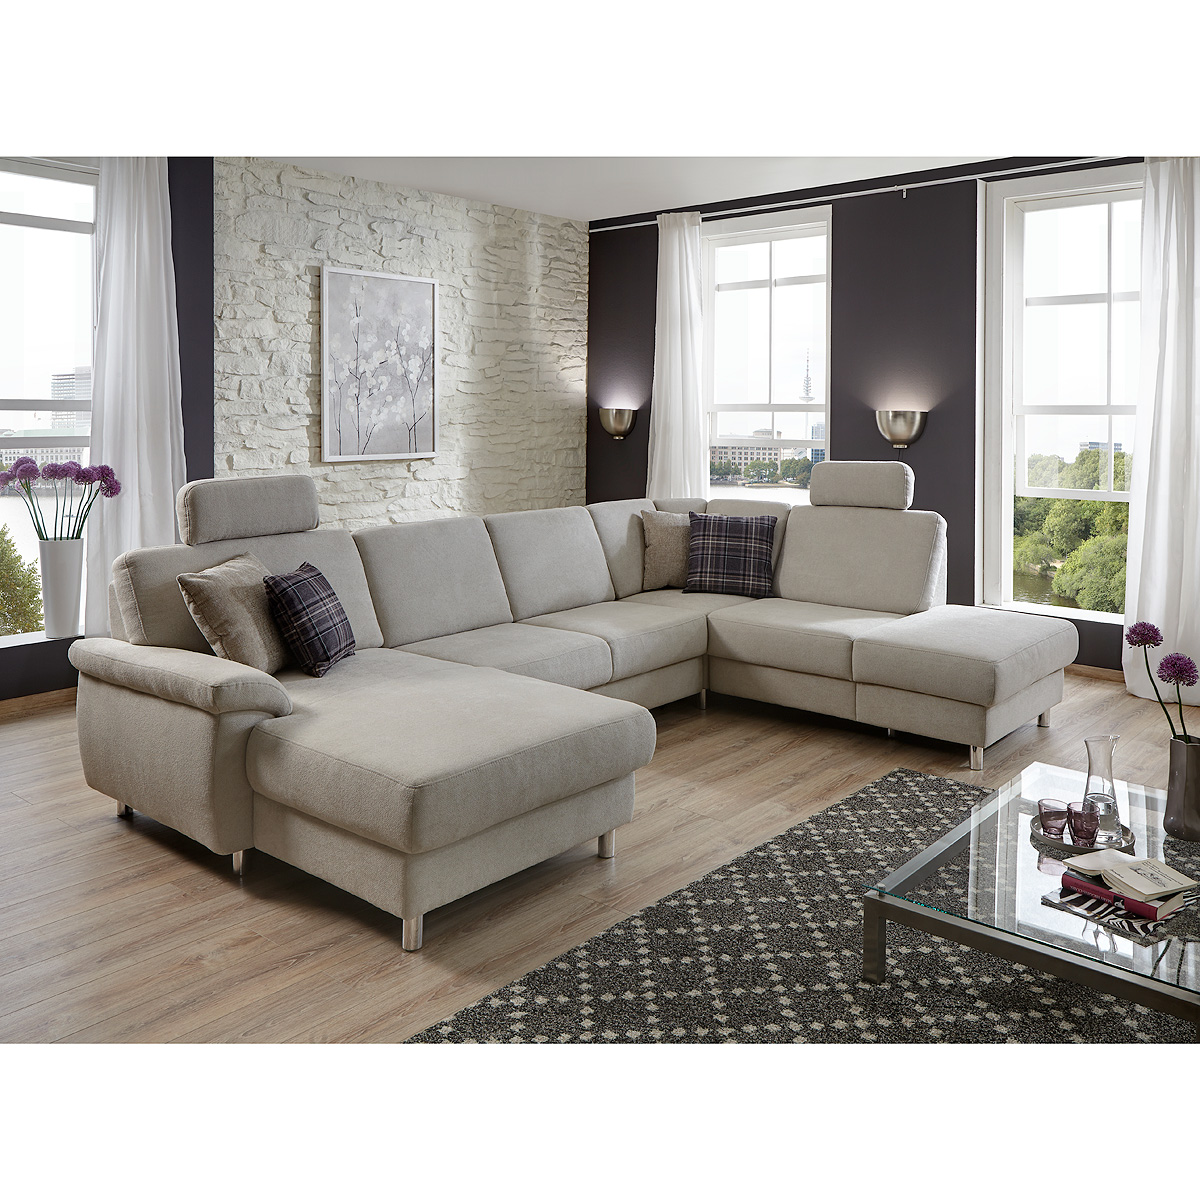 wohnlandschaft winston ecksofa sofa polsterm bel u form in grau wei 321 cm ebay. Black Bedroom Furniture Sets. Home Design Ideas